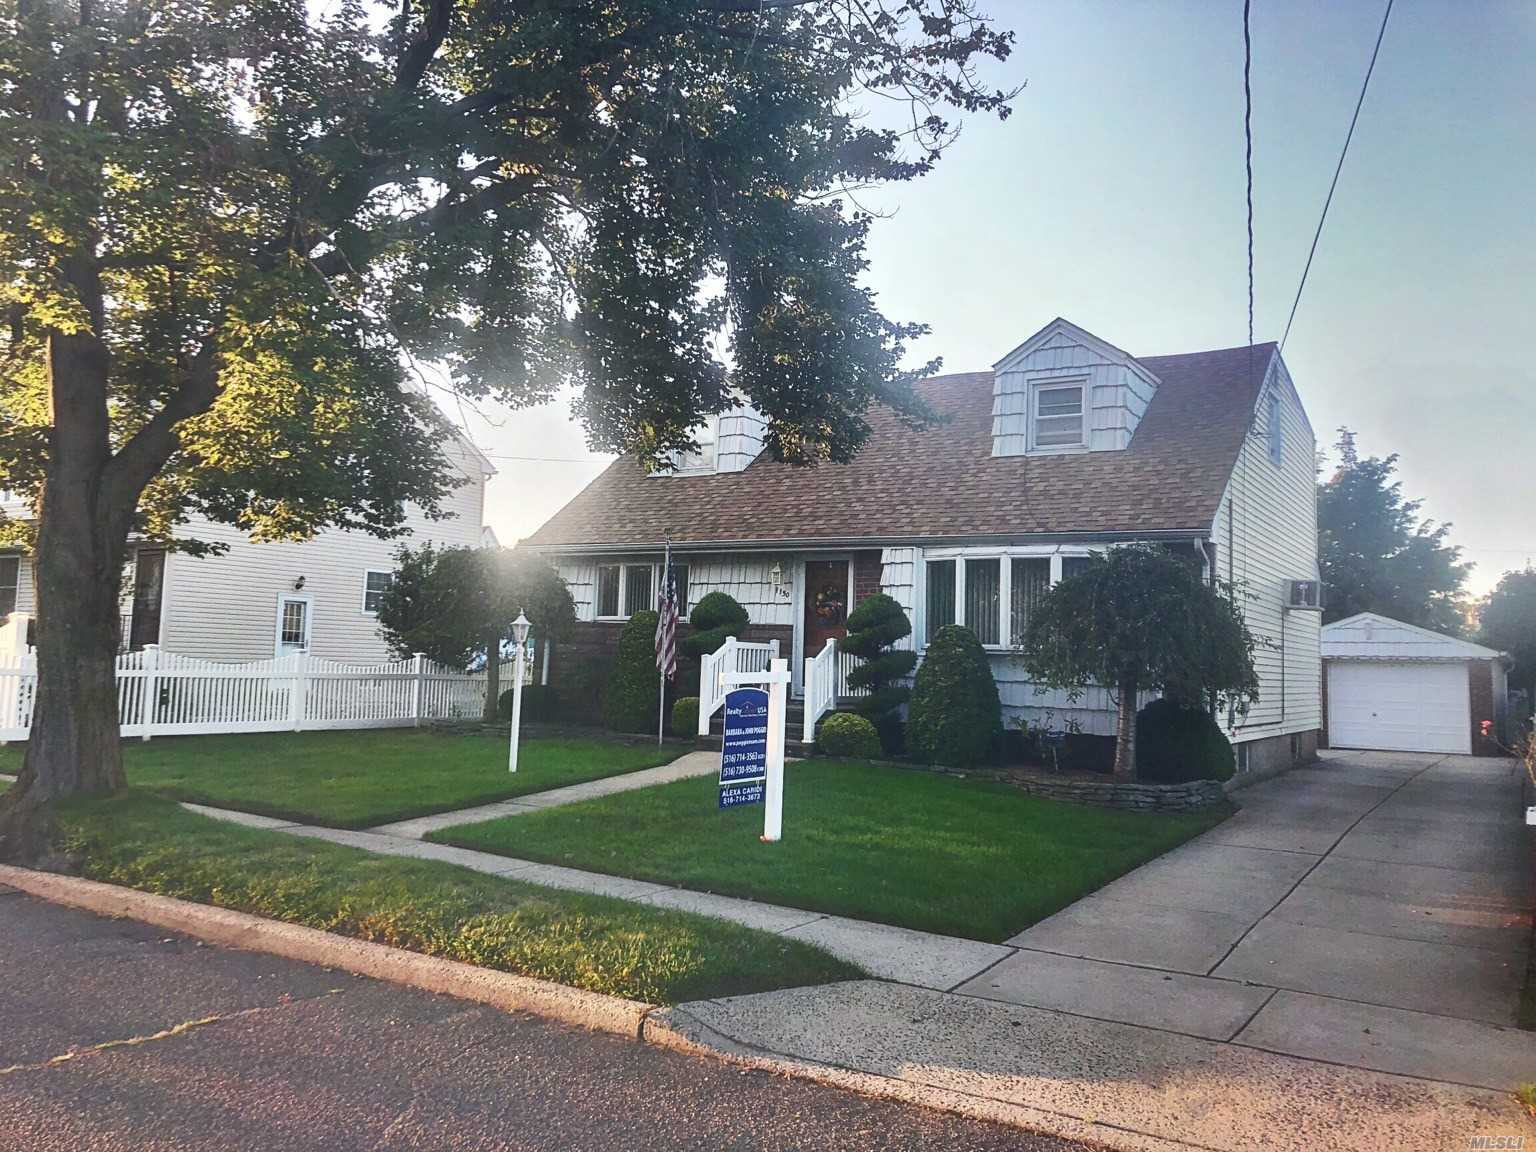 Exp. Cape In Franklin Square; Sd - Polk Elem.; H. Frank Carey Jr./Sr. Hs Grades 7-12. Mrs. Clean Lives Here; Room For Mom; Entertain Bsmt; Close To Shopping & Highways; Perfect Opportunity To Put Your Own Touch On An Already Great Home